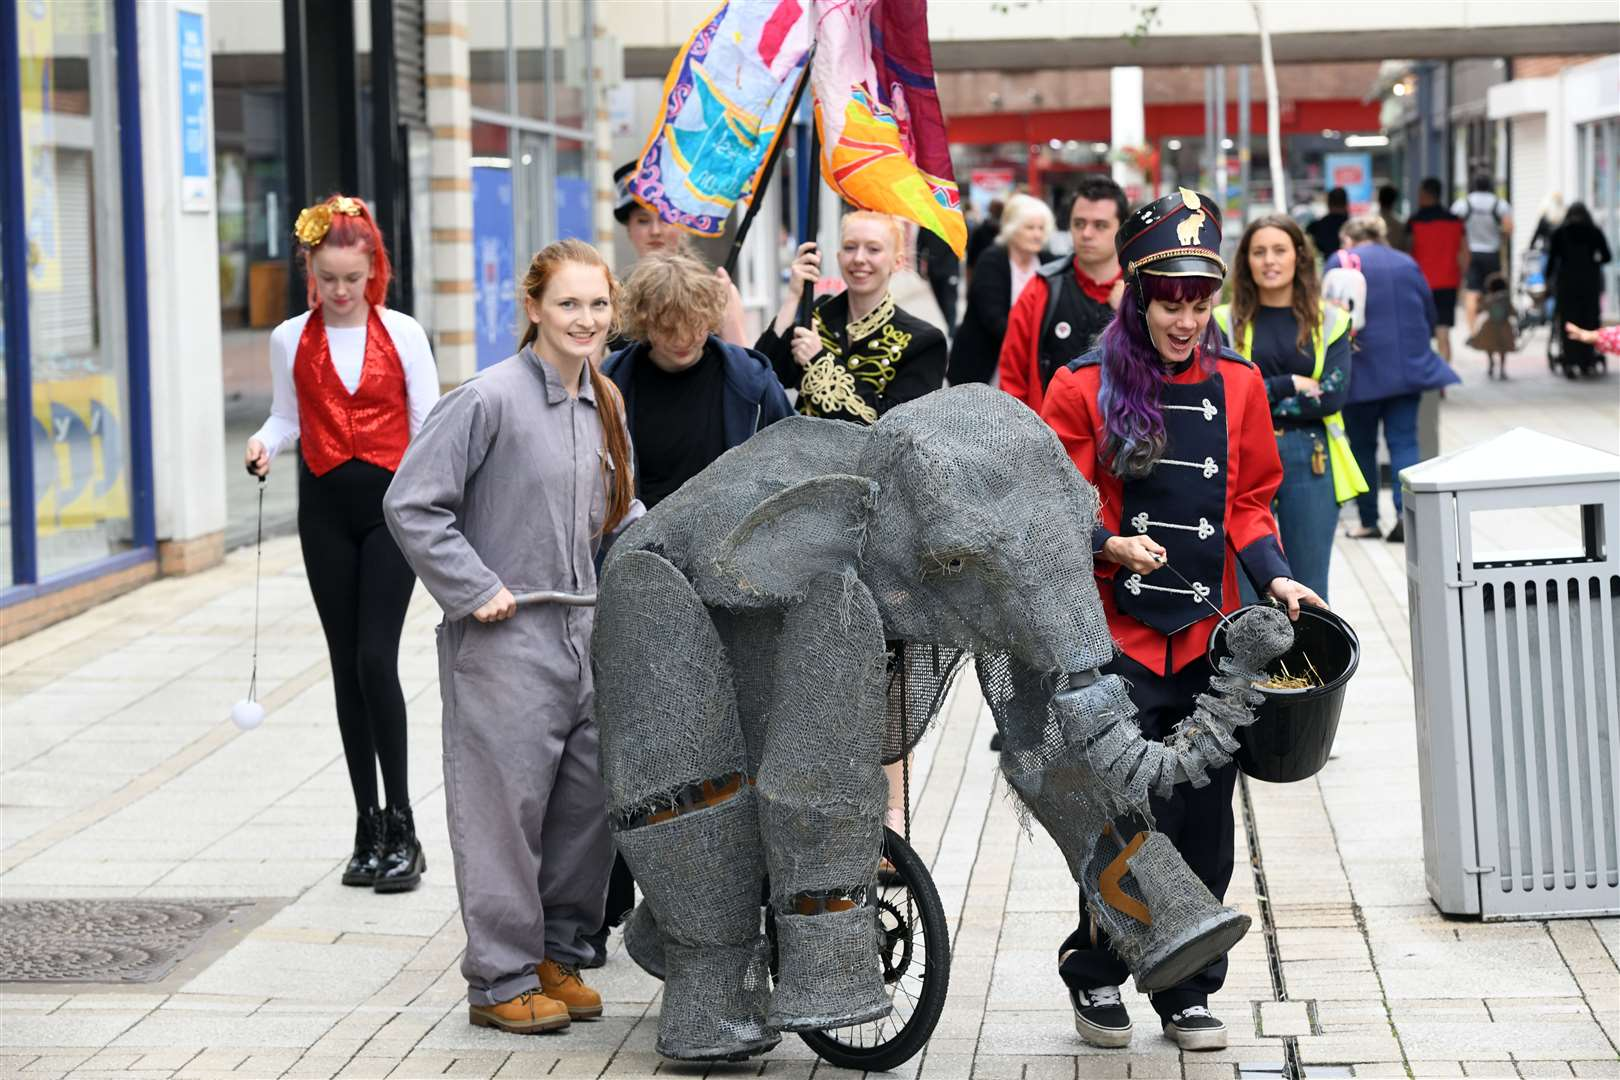 Lost in Translation Circus in Kings Lynn town centre..Pablo the walking baby elephant. (49784601)